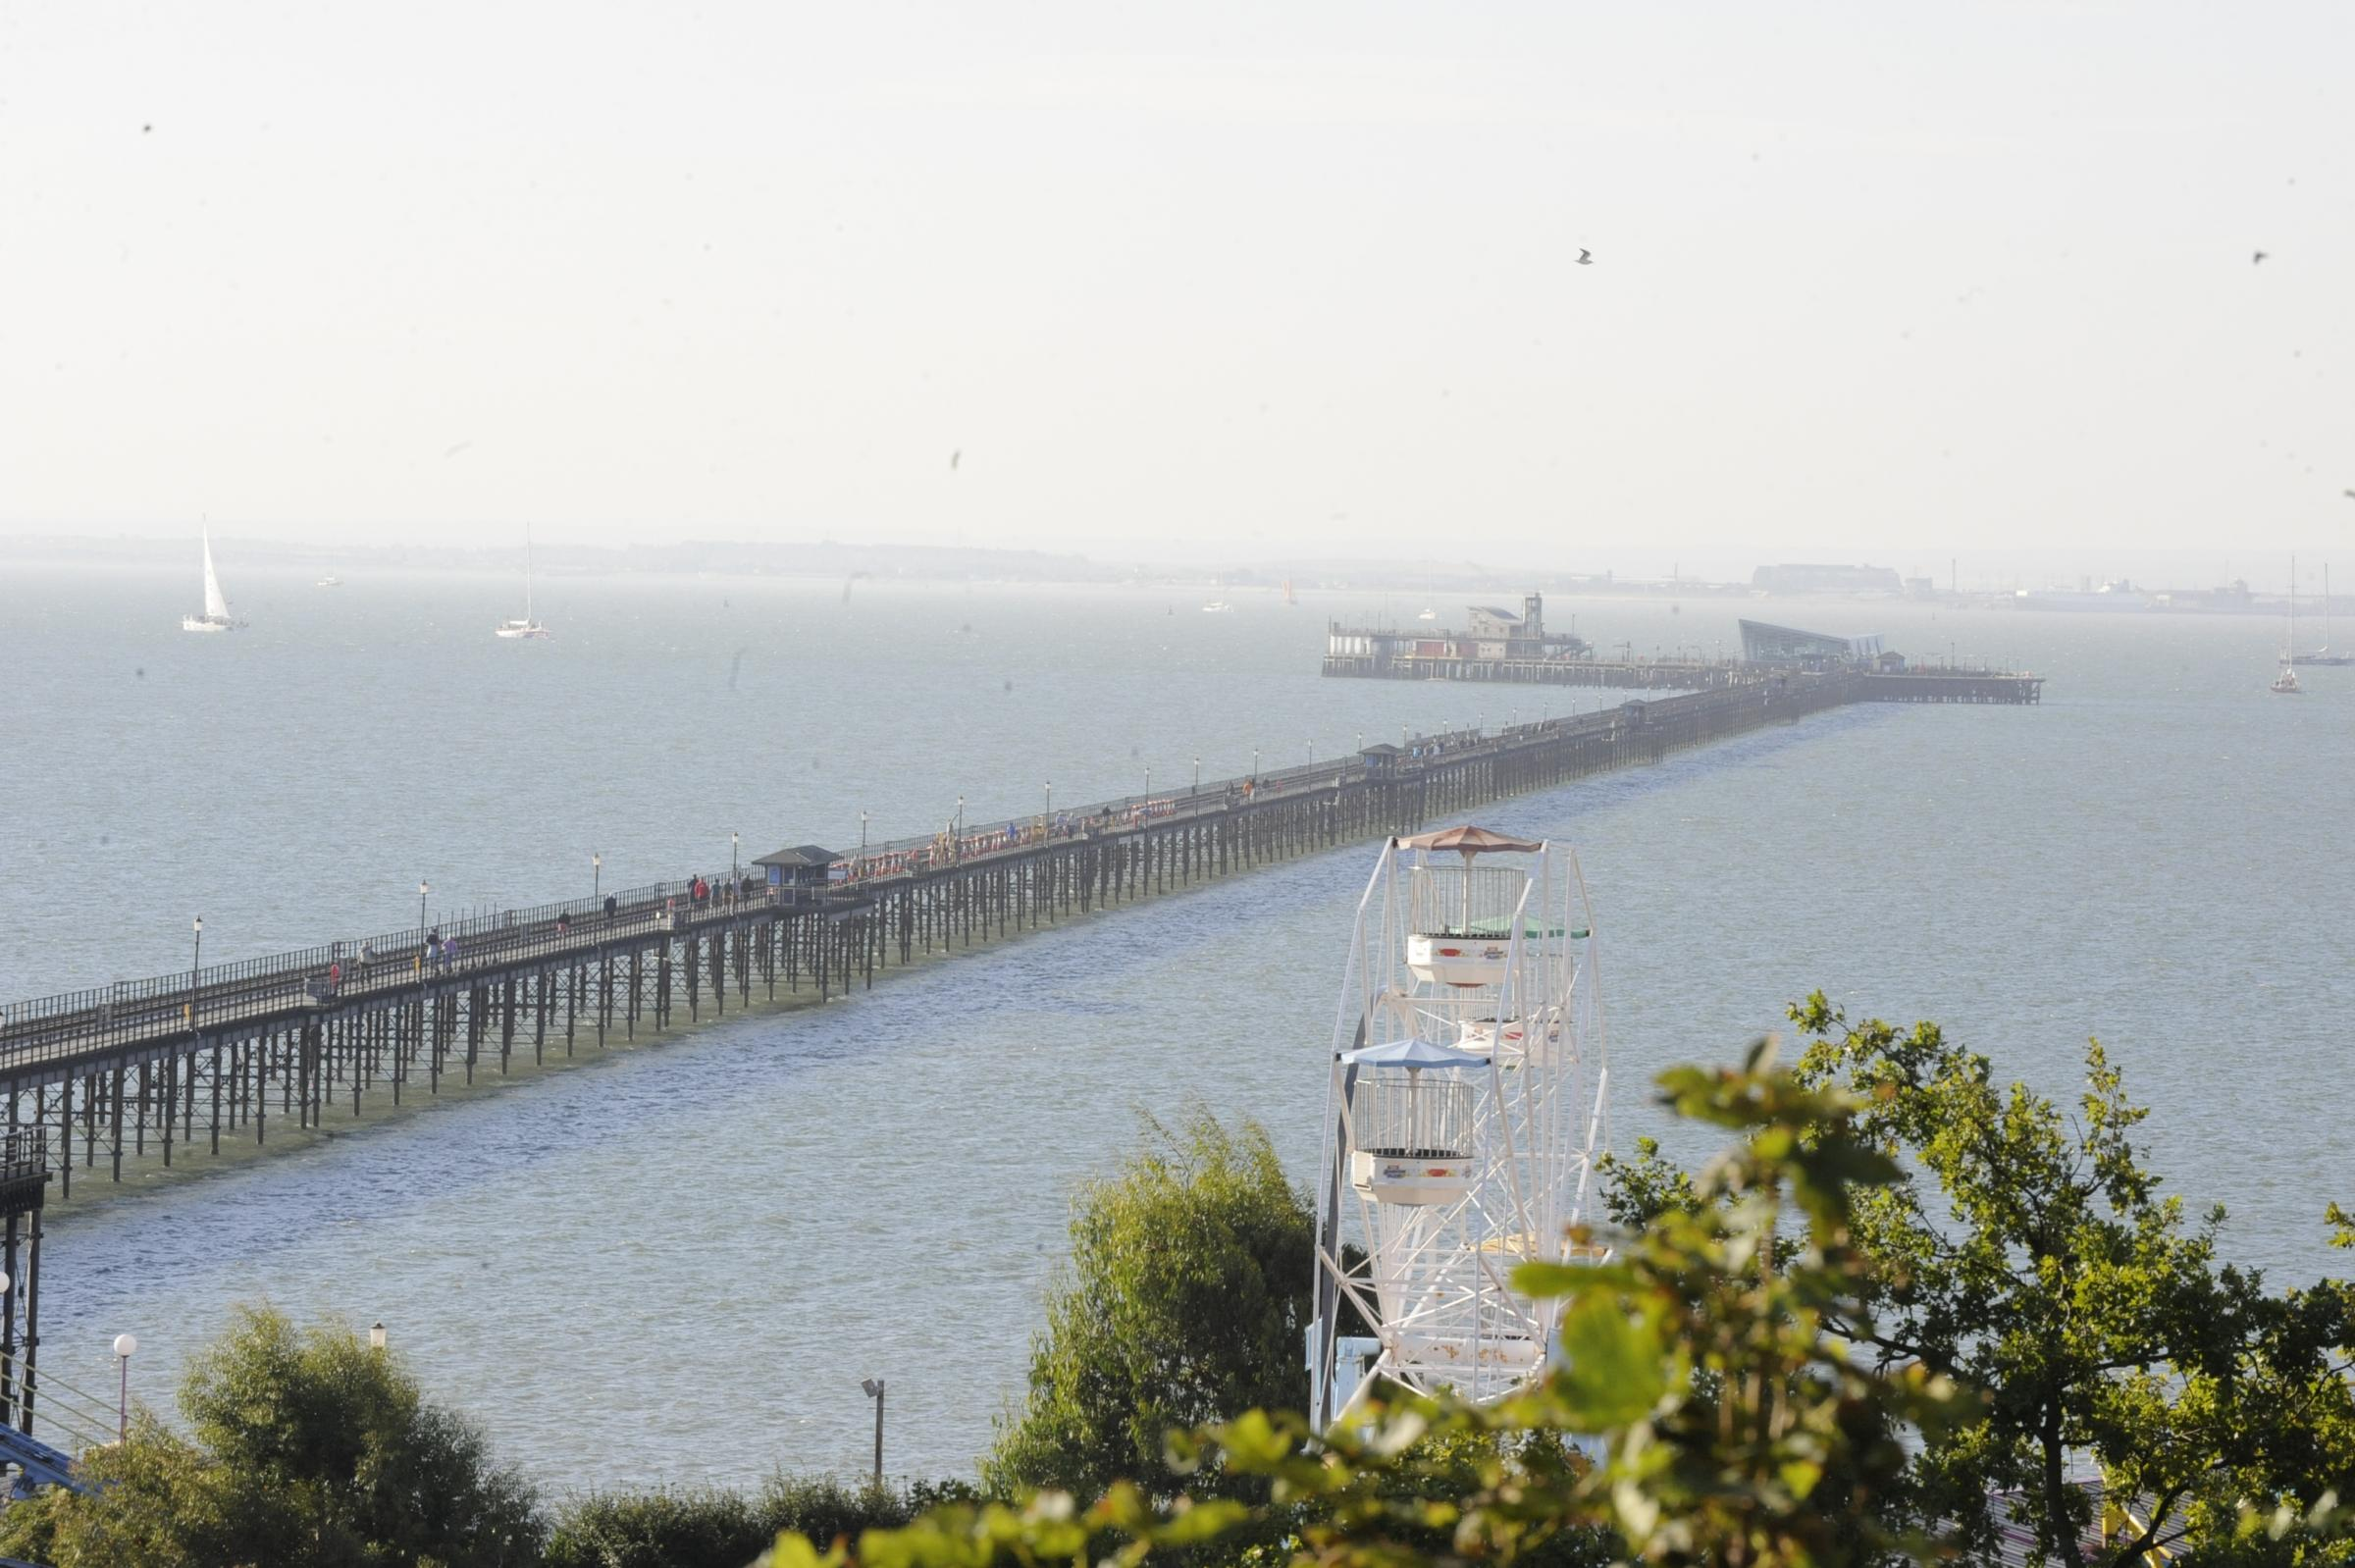 Southend Pier voted as one of England's top attractions